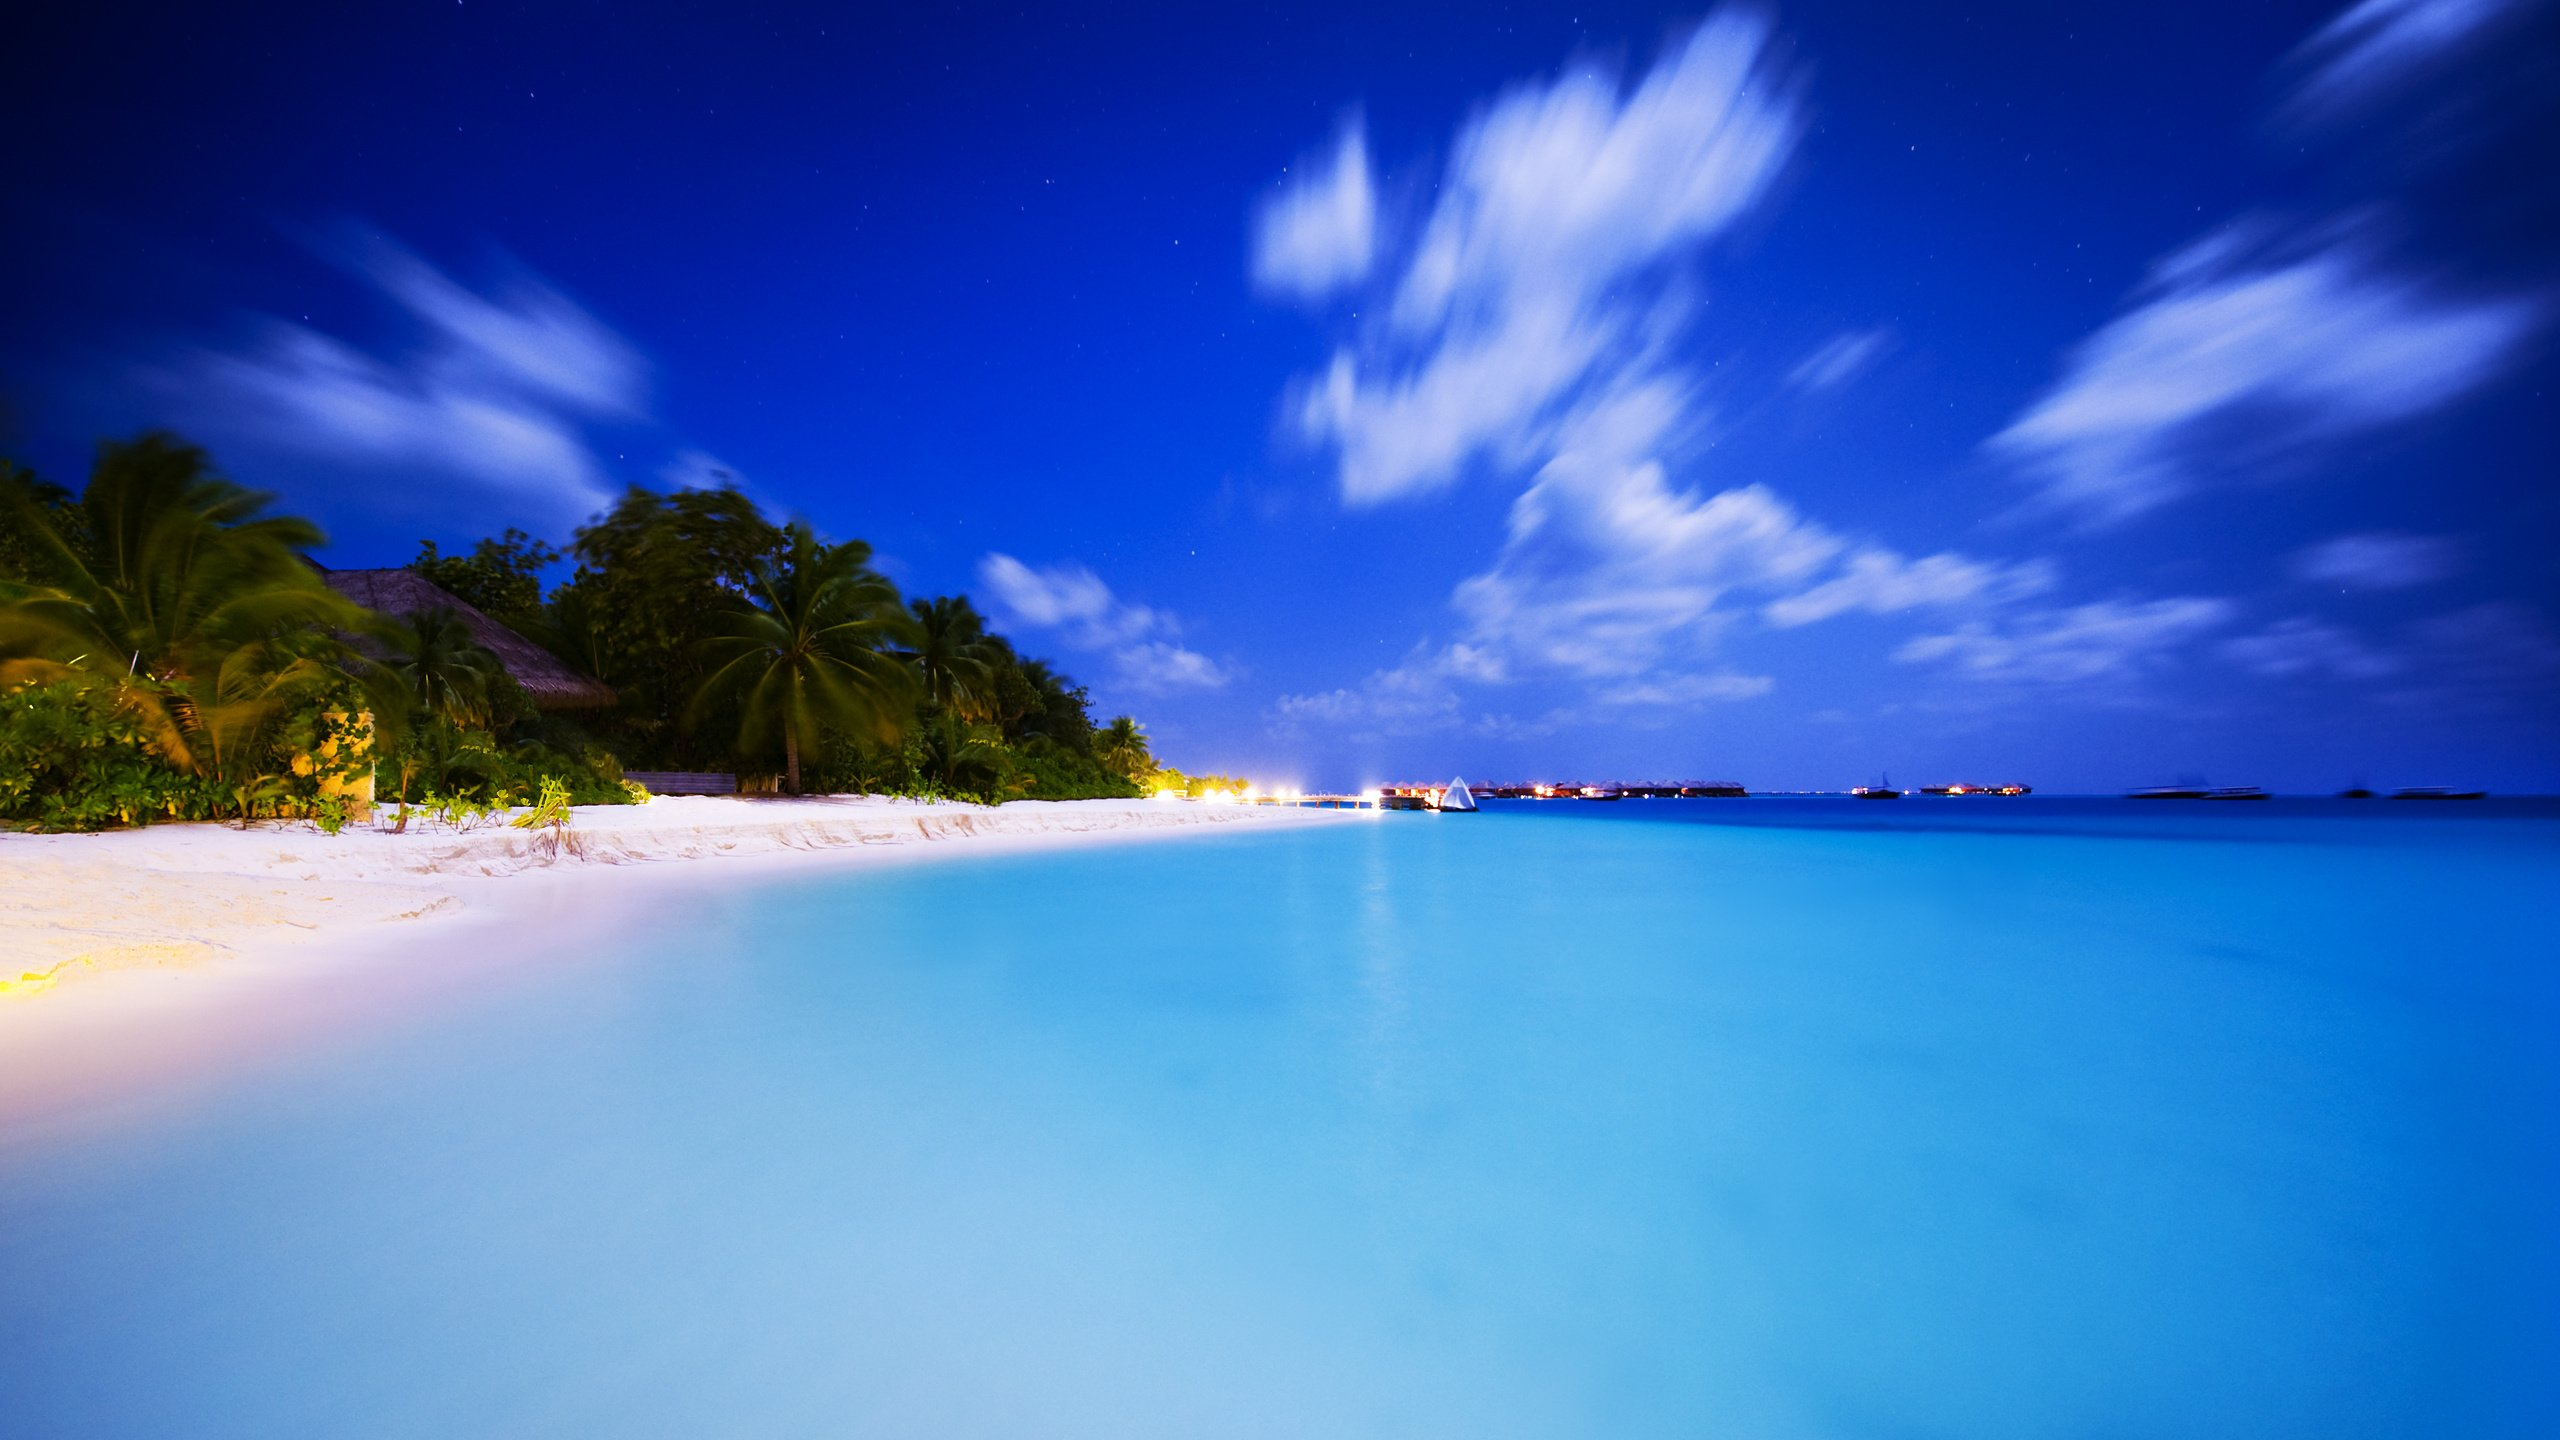 tropical resorts wallpaper background - photo #4